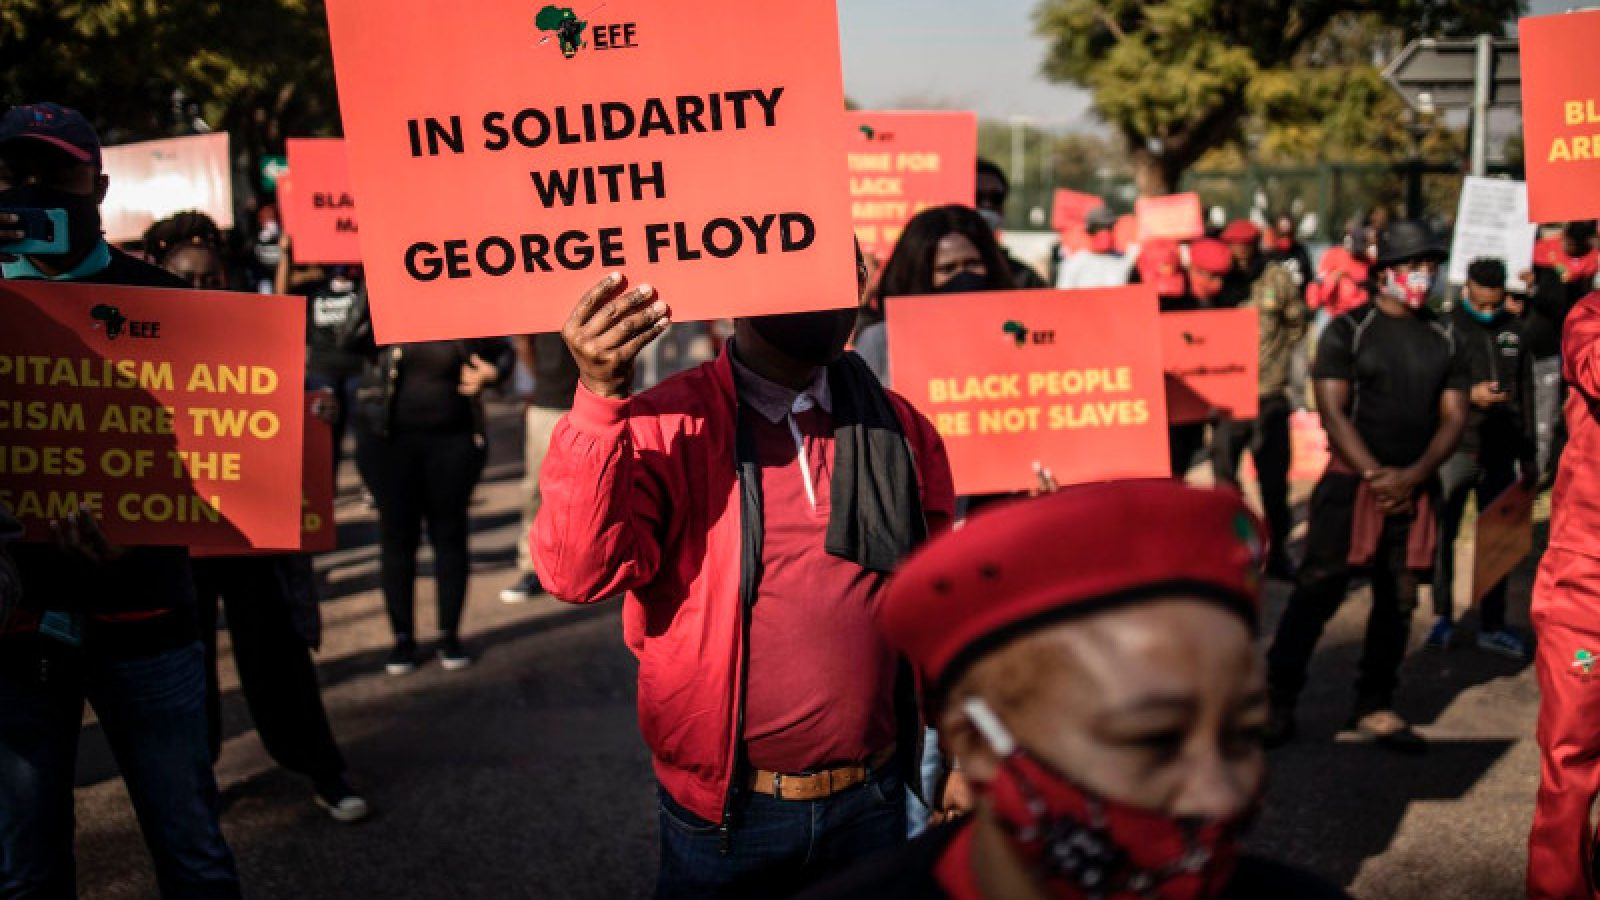 Economic Freedom Fighters supporters hold Black Lives Matter signs in front of the U.S. Embassy in Pretoria